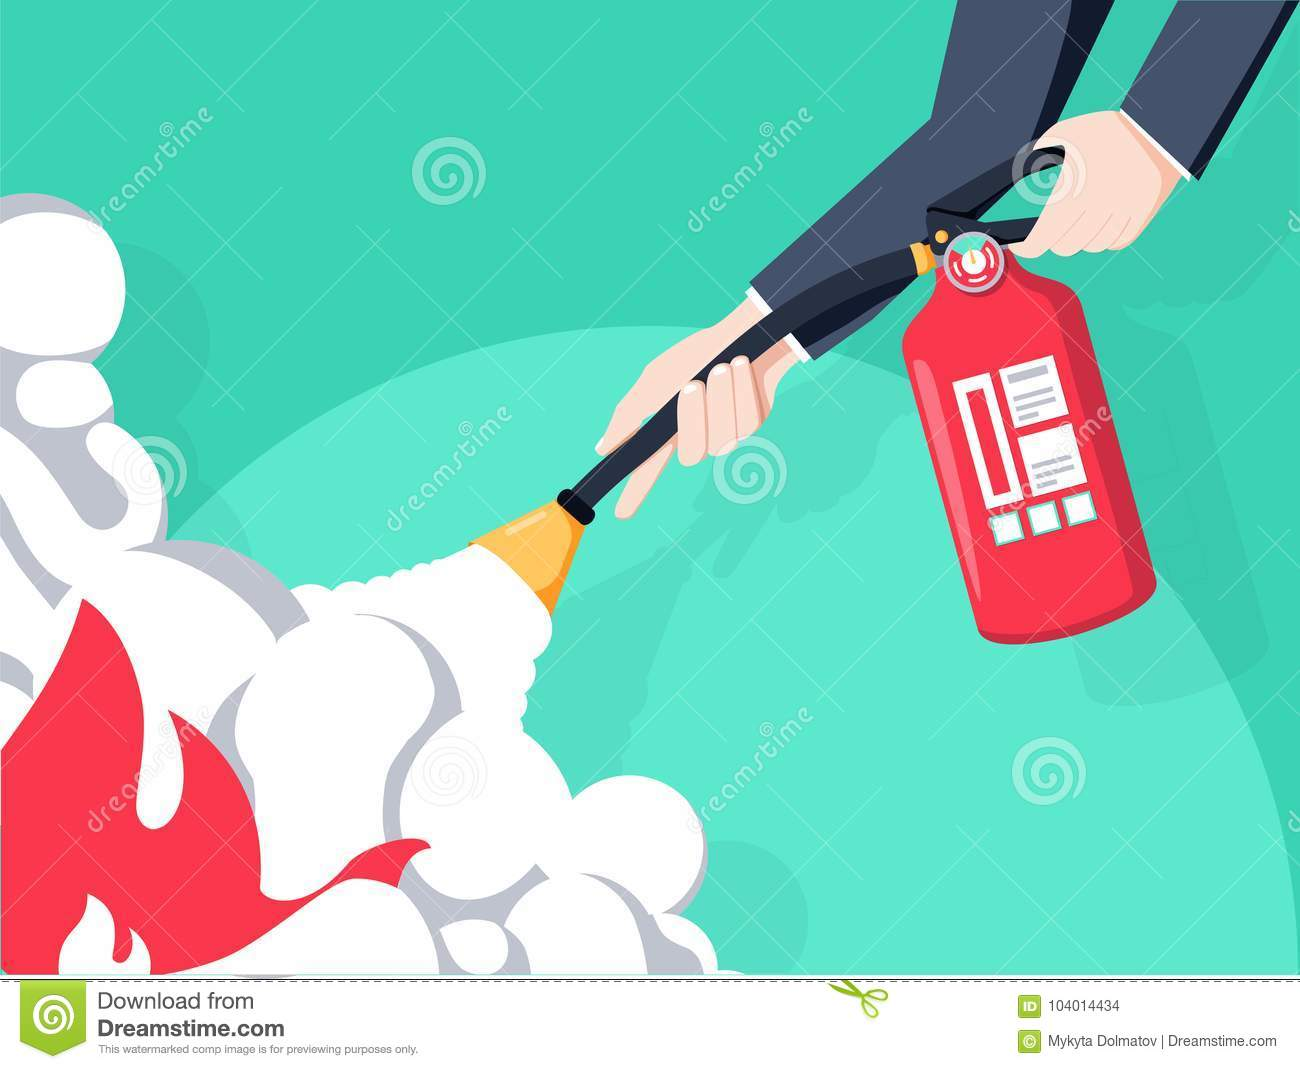 Extinguish fire. Fireman hold in hand fire extinguisher. Vector illustration flat design. Isolated on background.